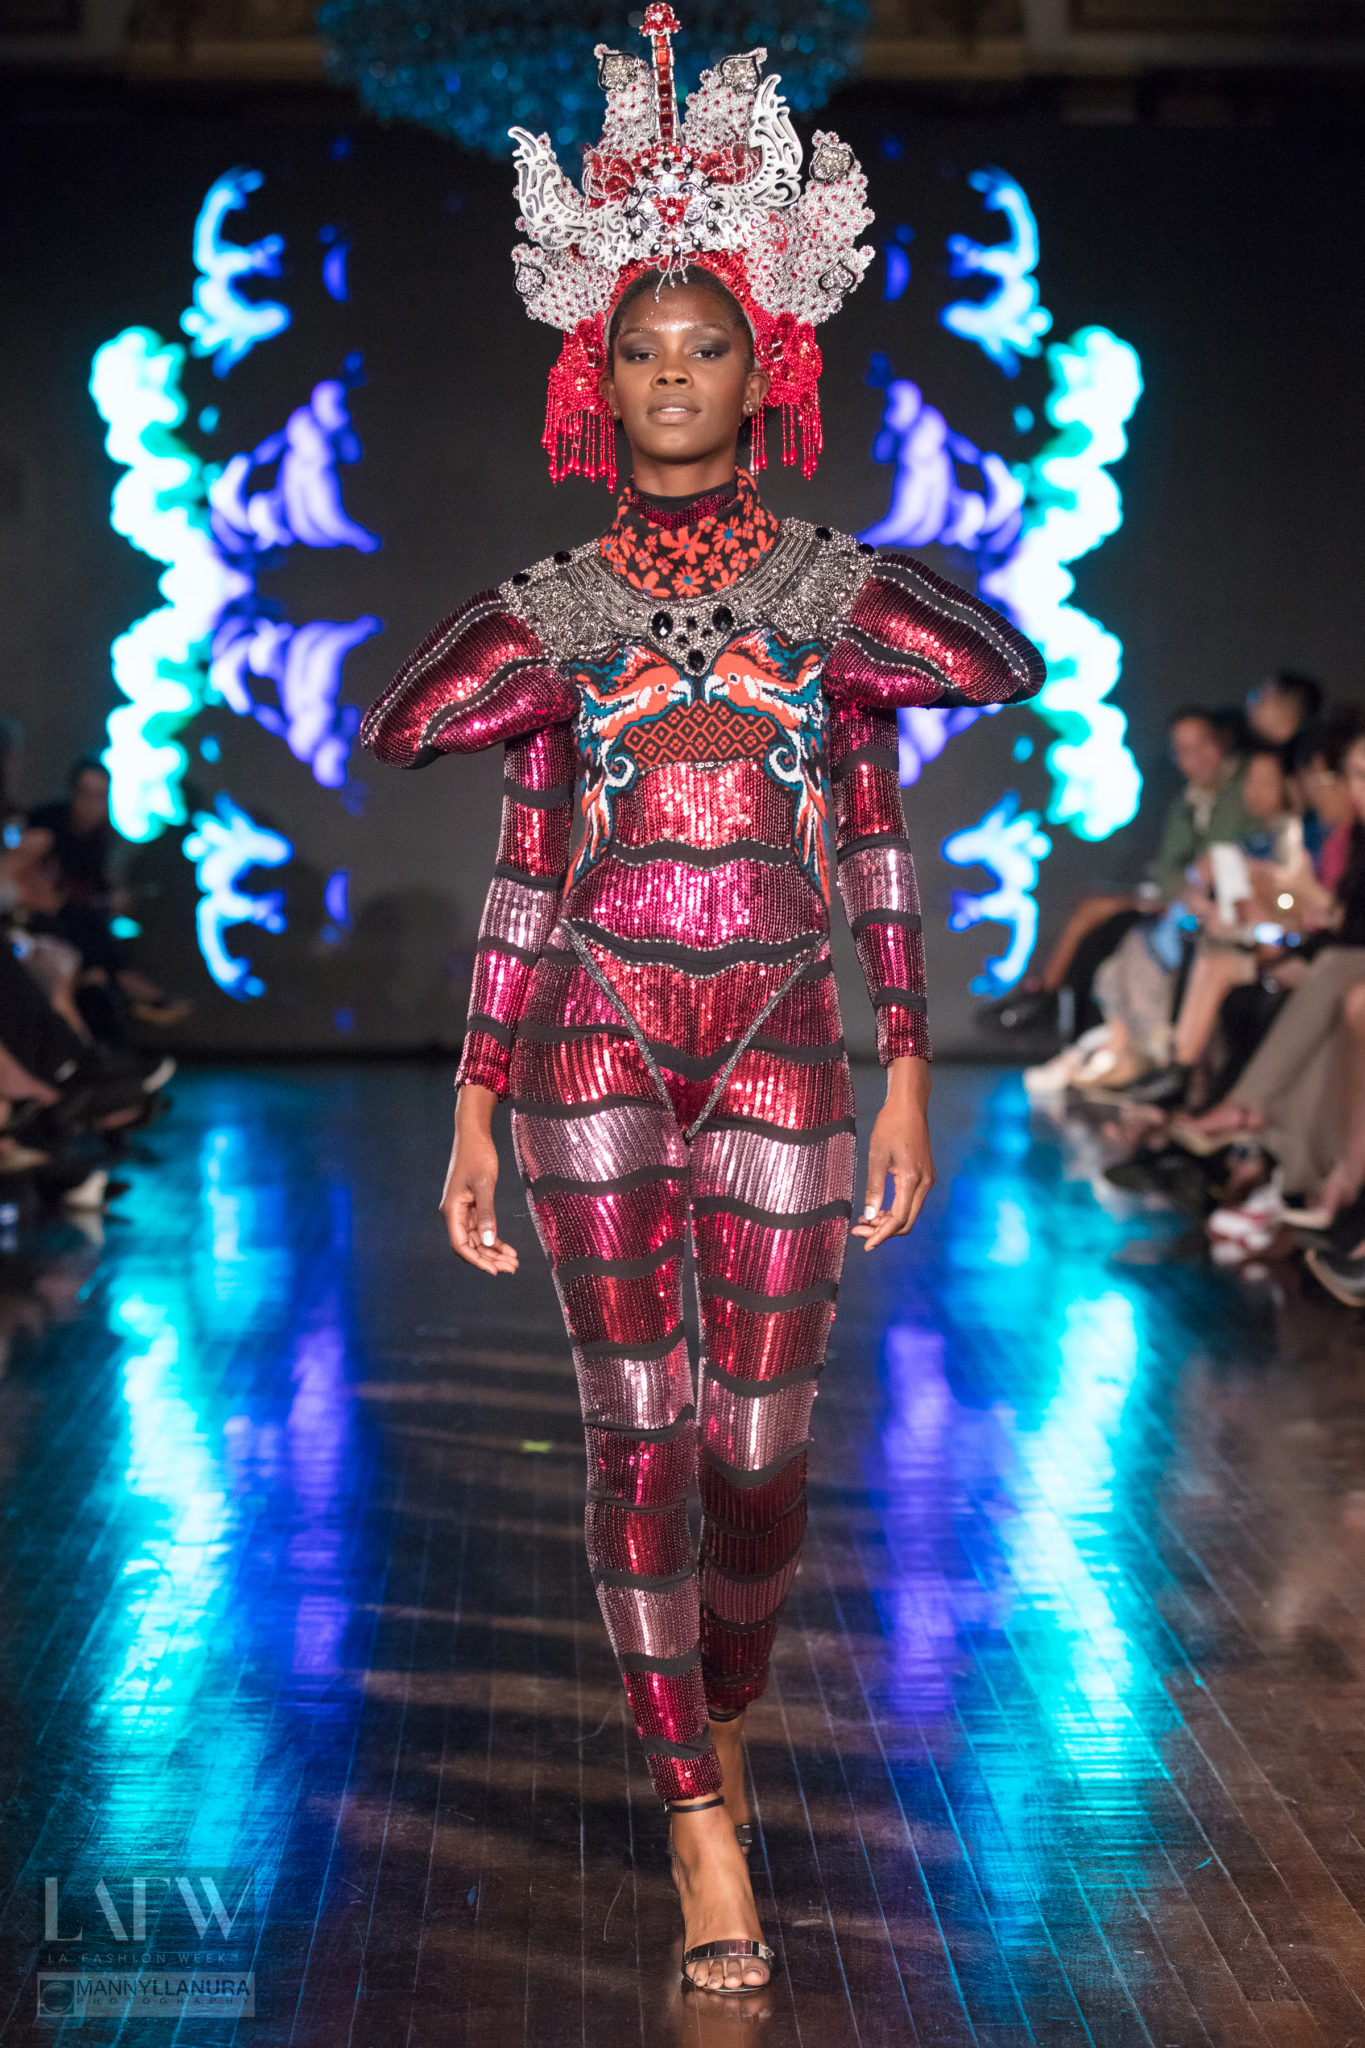 George Styler Runway at LAFW SS18 Los Angeles Fashion Week